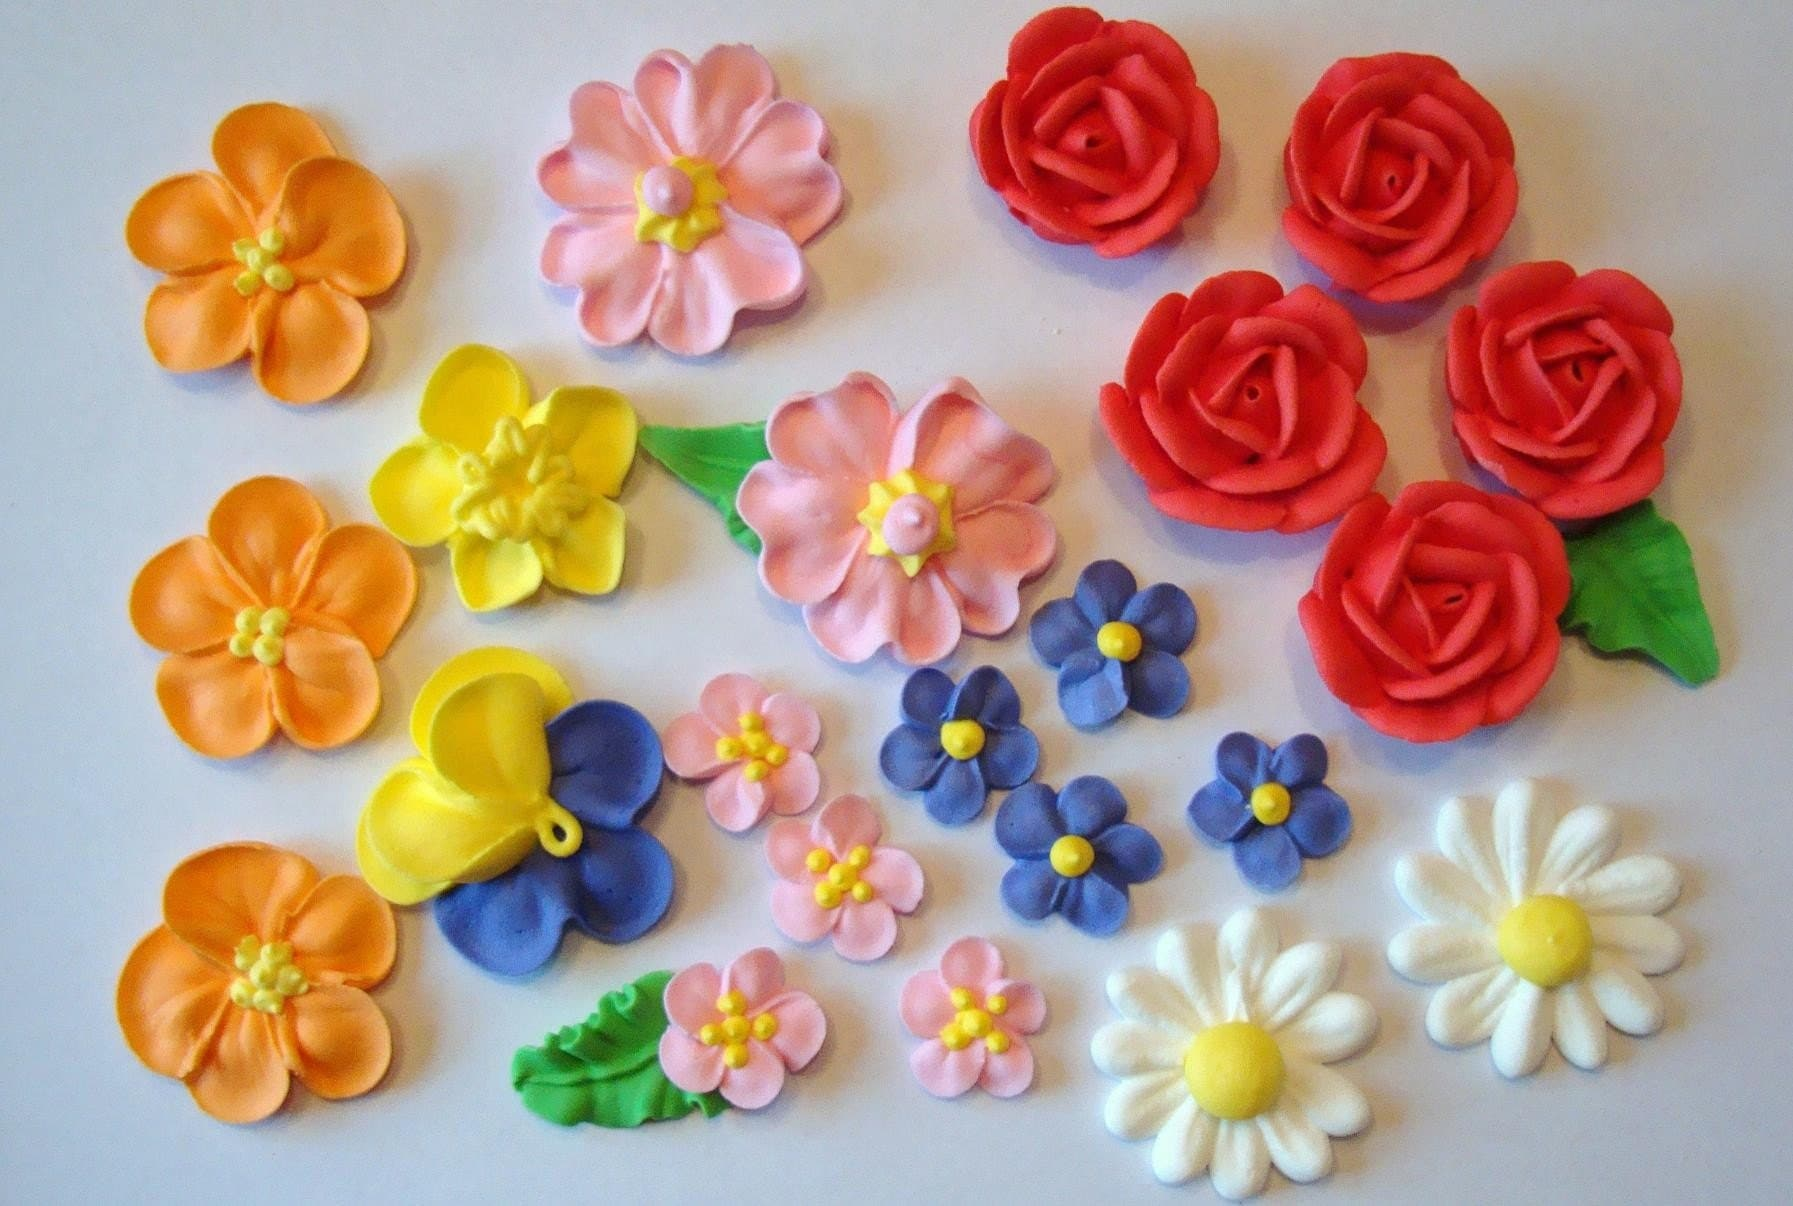 Cake Decorating Icing For Flowers : Flowers Frosting Flowers Pinterest